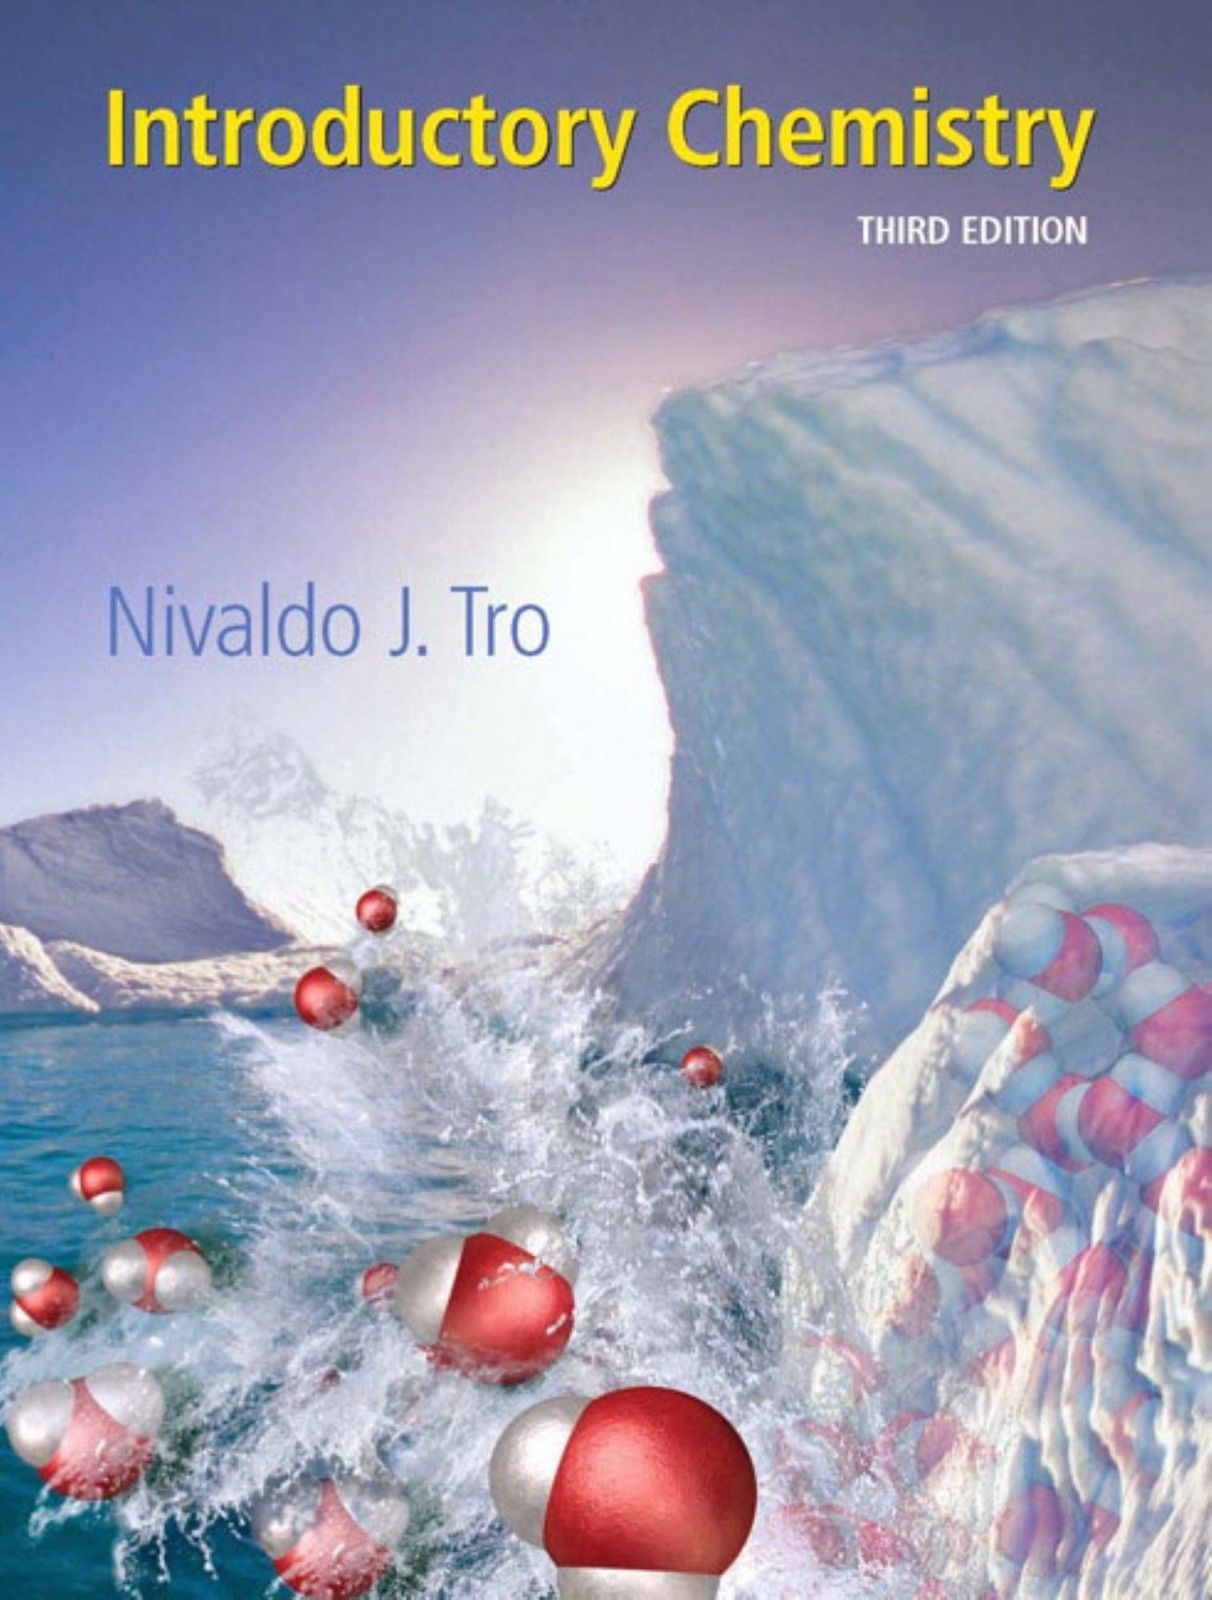 *VERY GOOD CONDITION* INTRODUCTORY CHEMISTRY 3RD US EDITION BY NIVALDO J. TRO